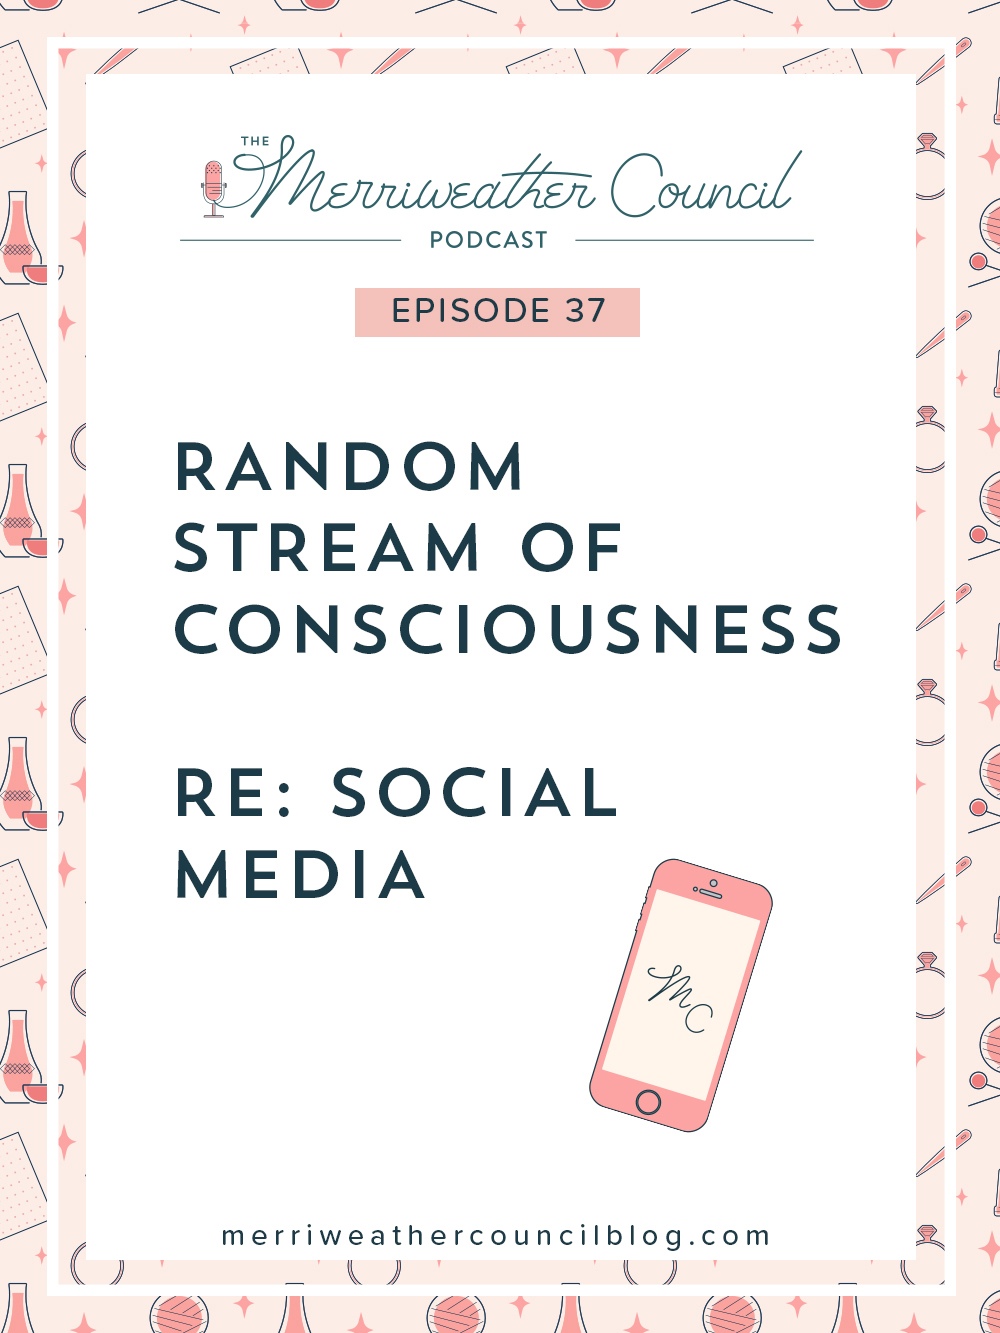 Episode 37: Random Stream of Consciousness re: Social Media | The Merriweather Council Podcast